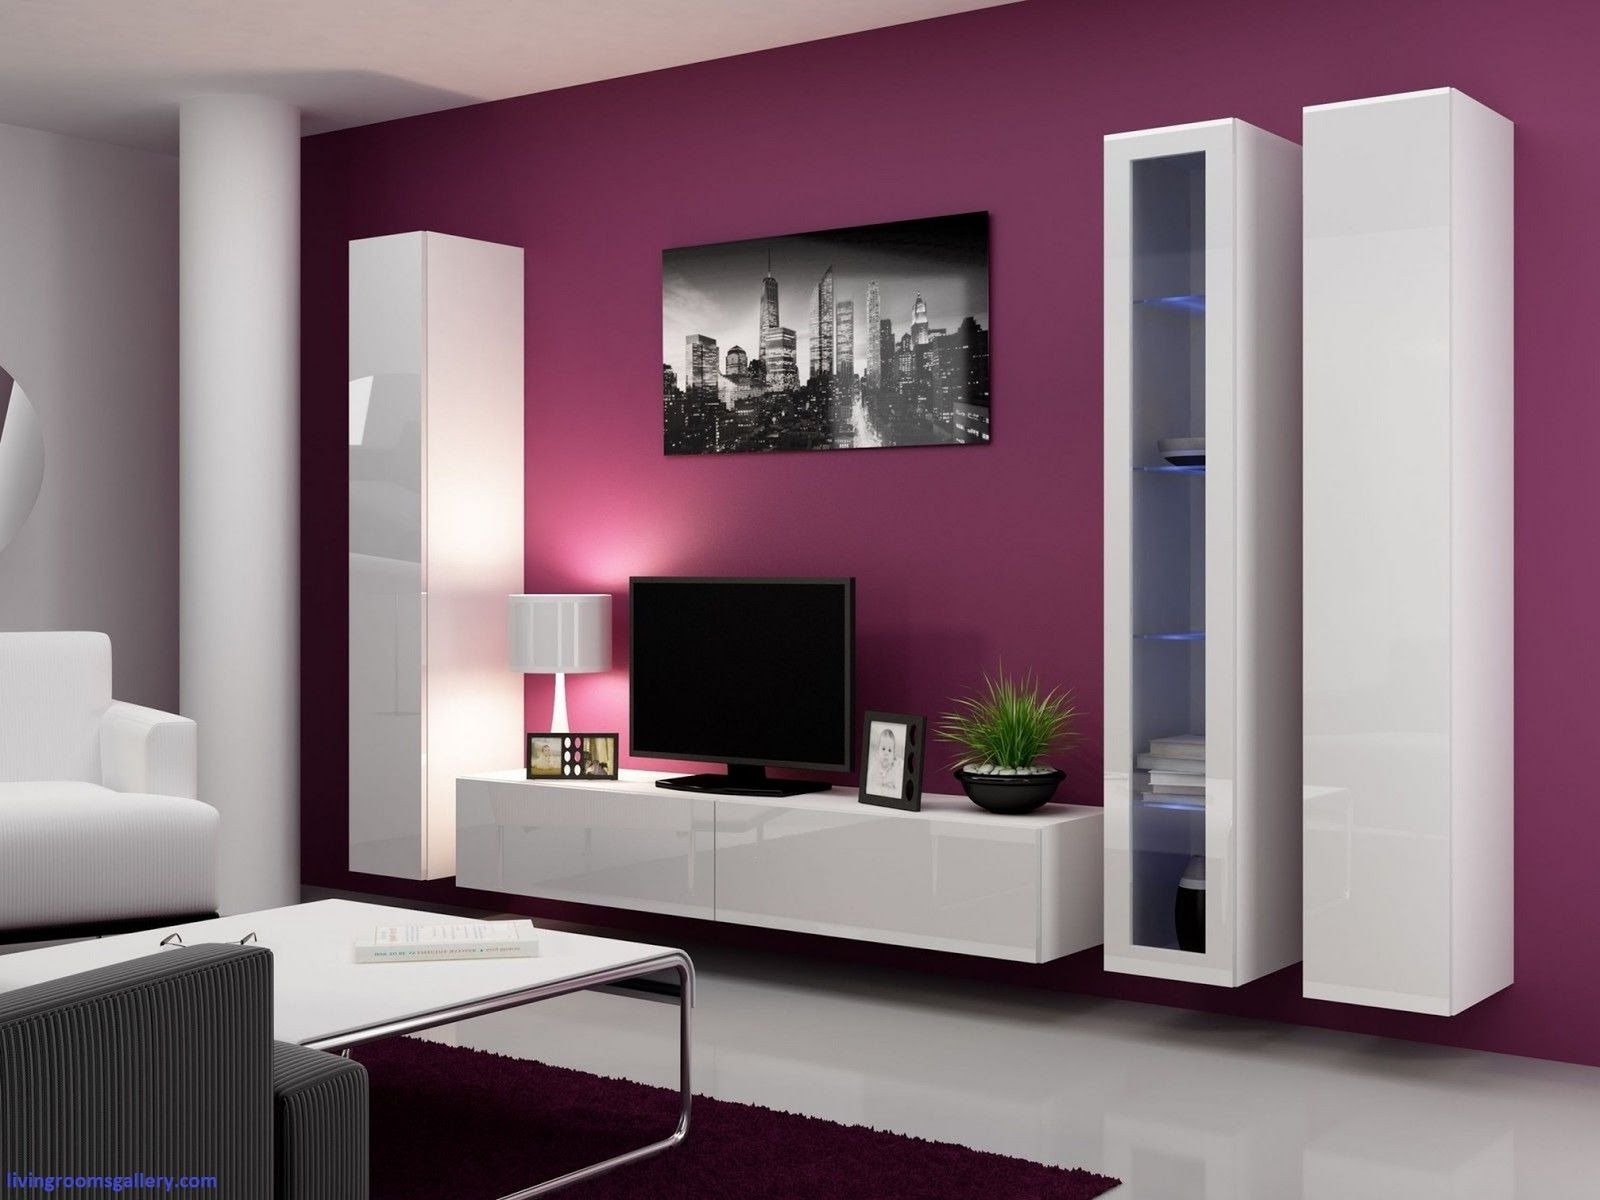 modern cupboard designs photo - 3 | Living room wall units ...